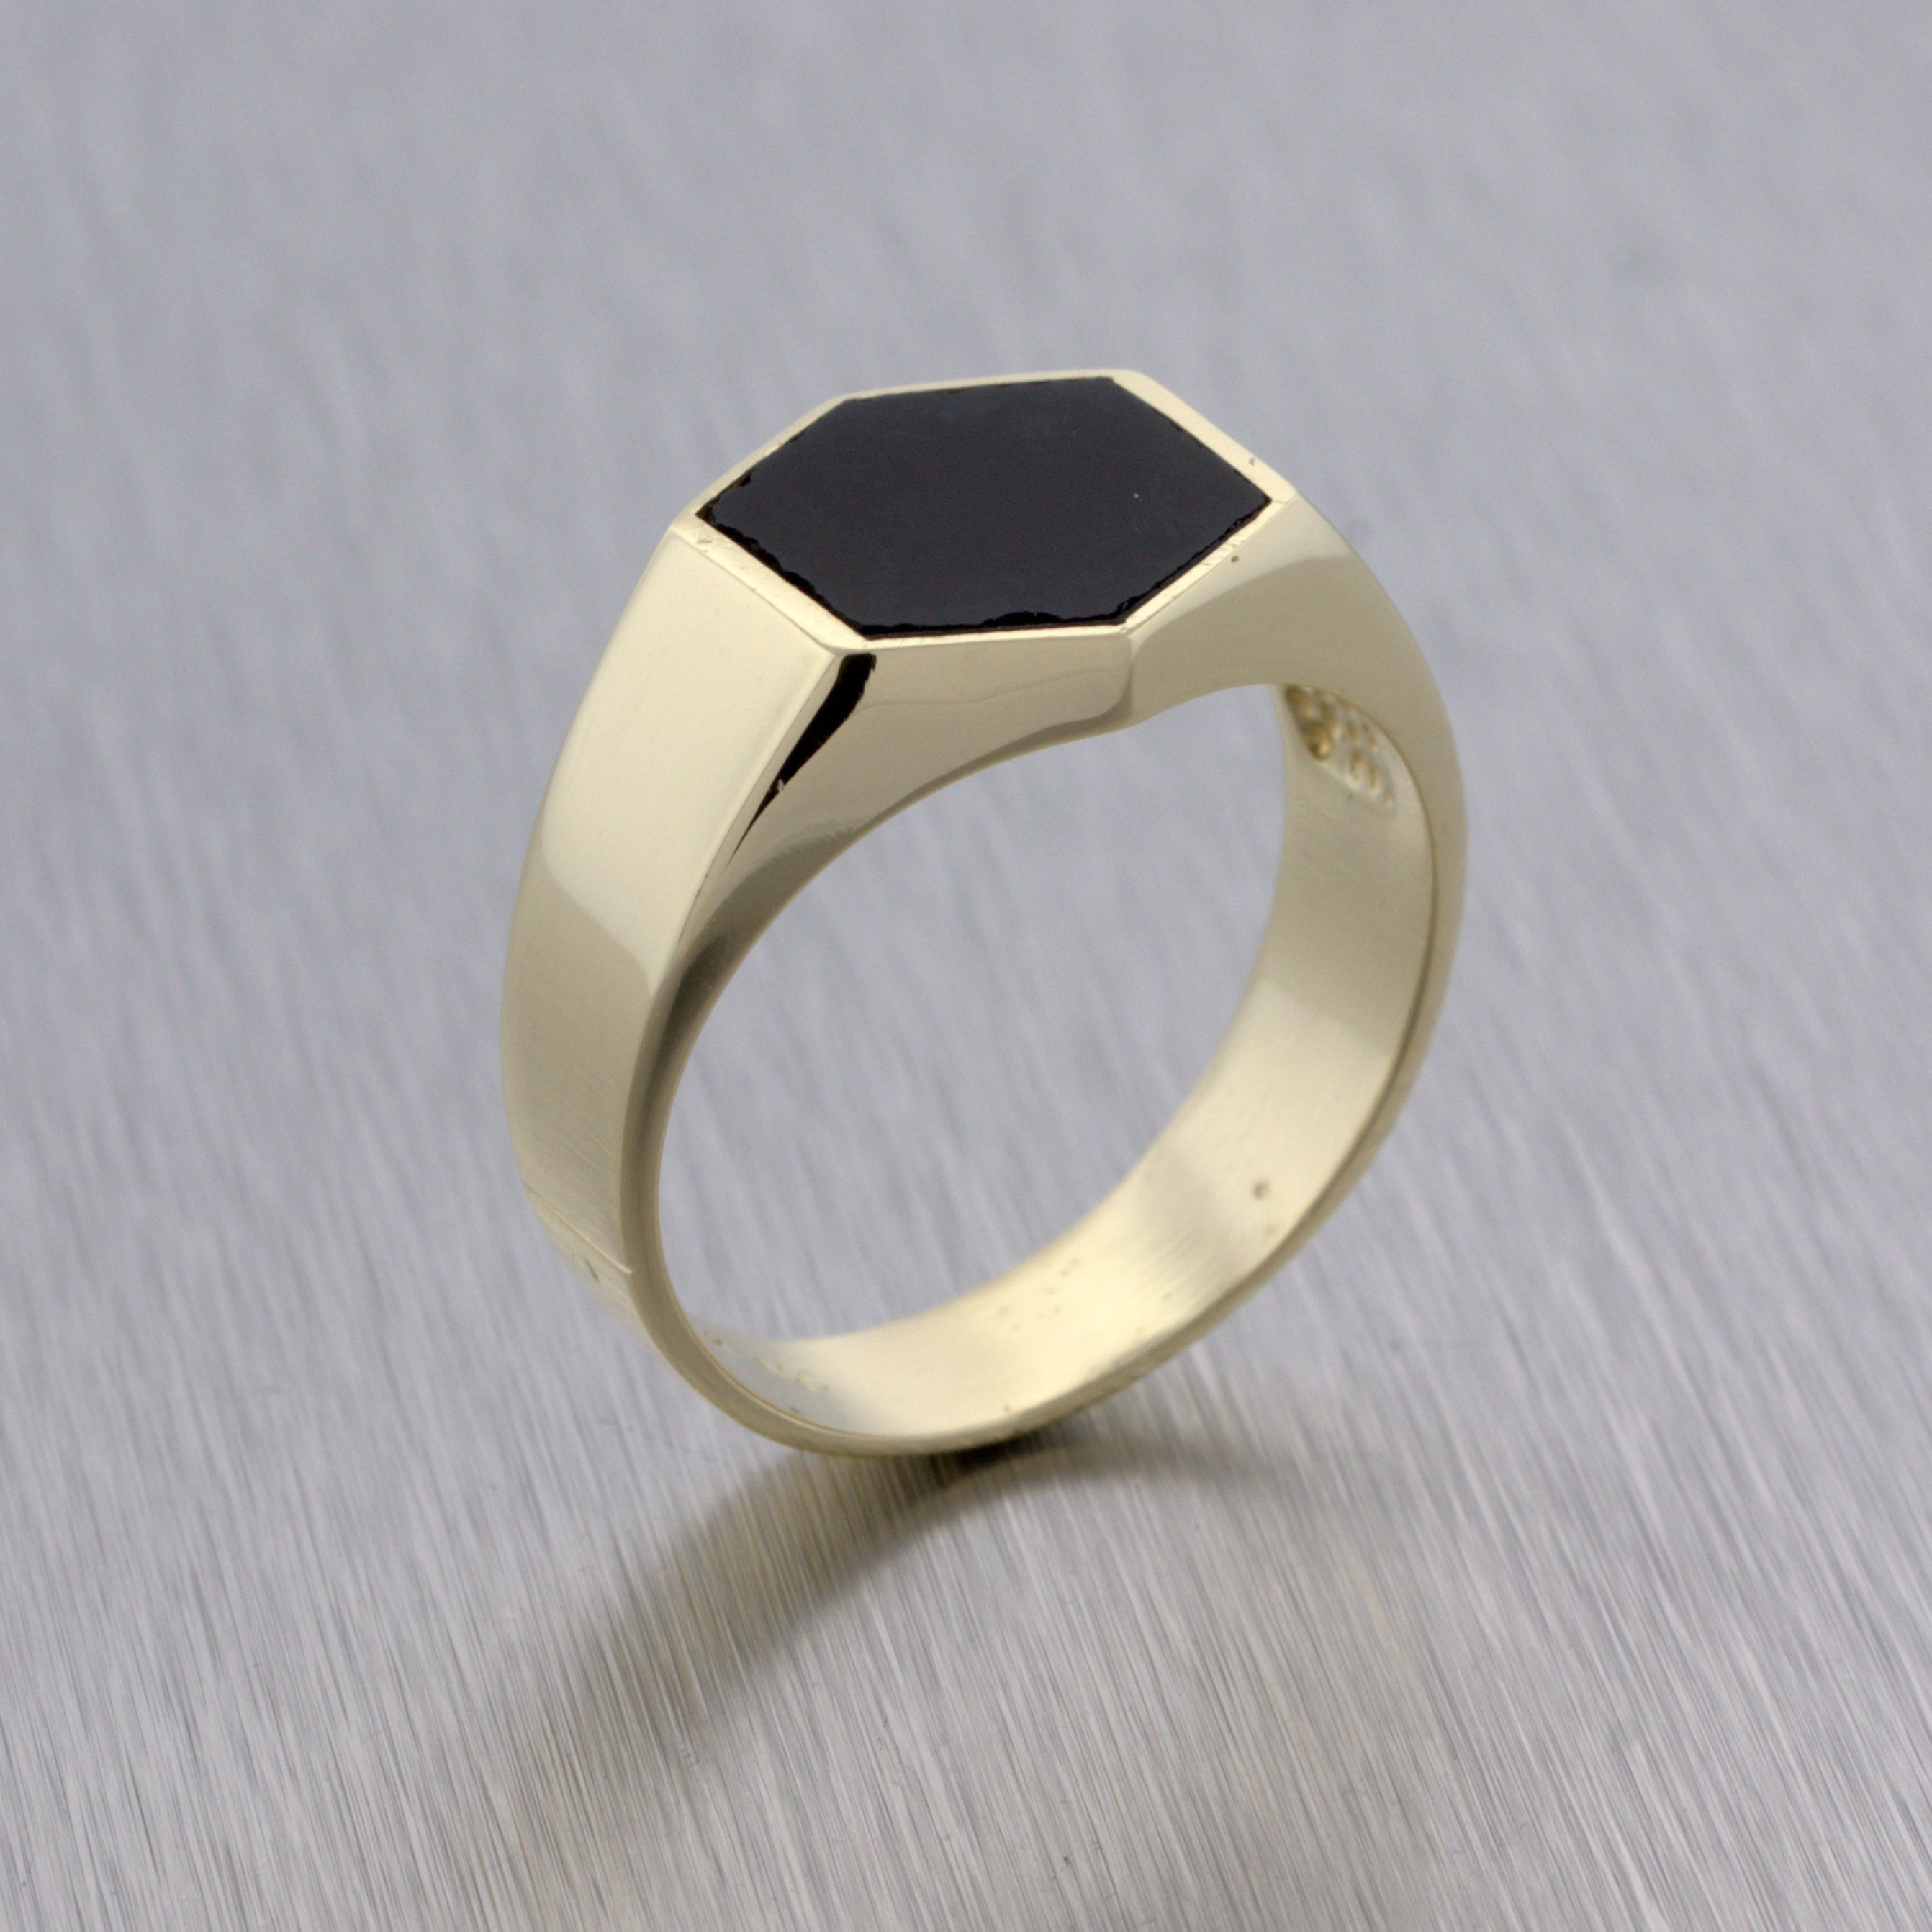 baxtermoerman in rings ring products halo and with onyx wedding rose black piedras gold